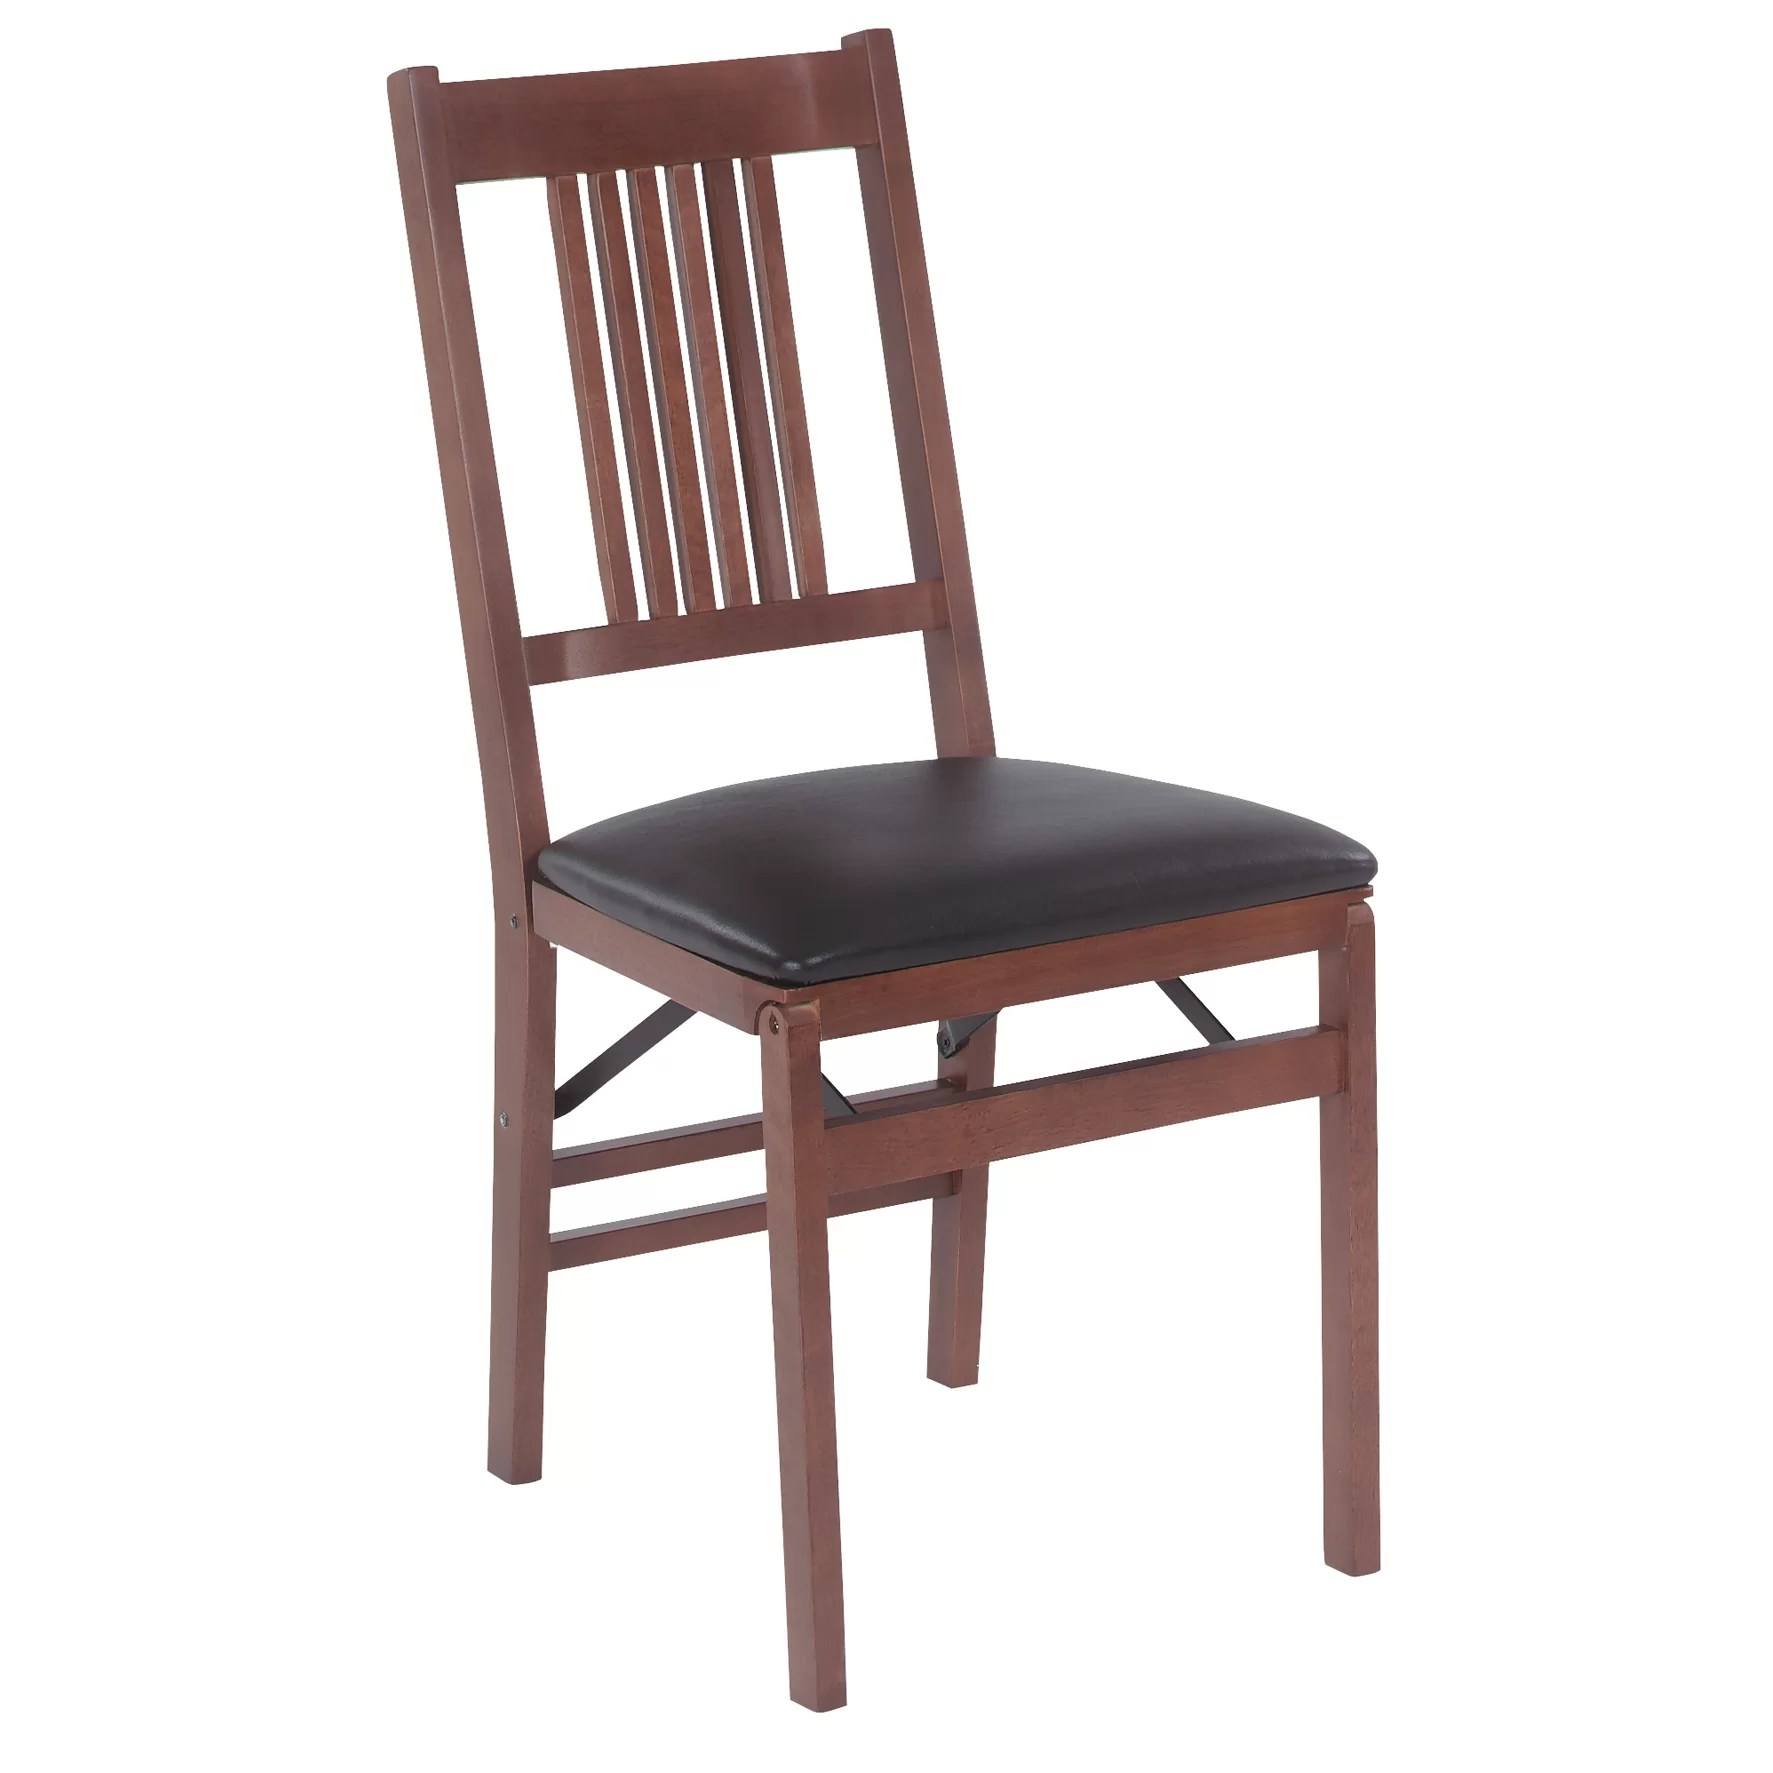 Stakmore Folding Chair Stakmore True Mission Wood Folding Chair With Vinyl Seat